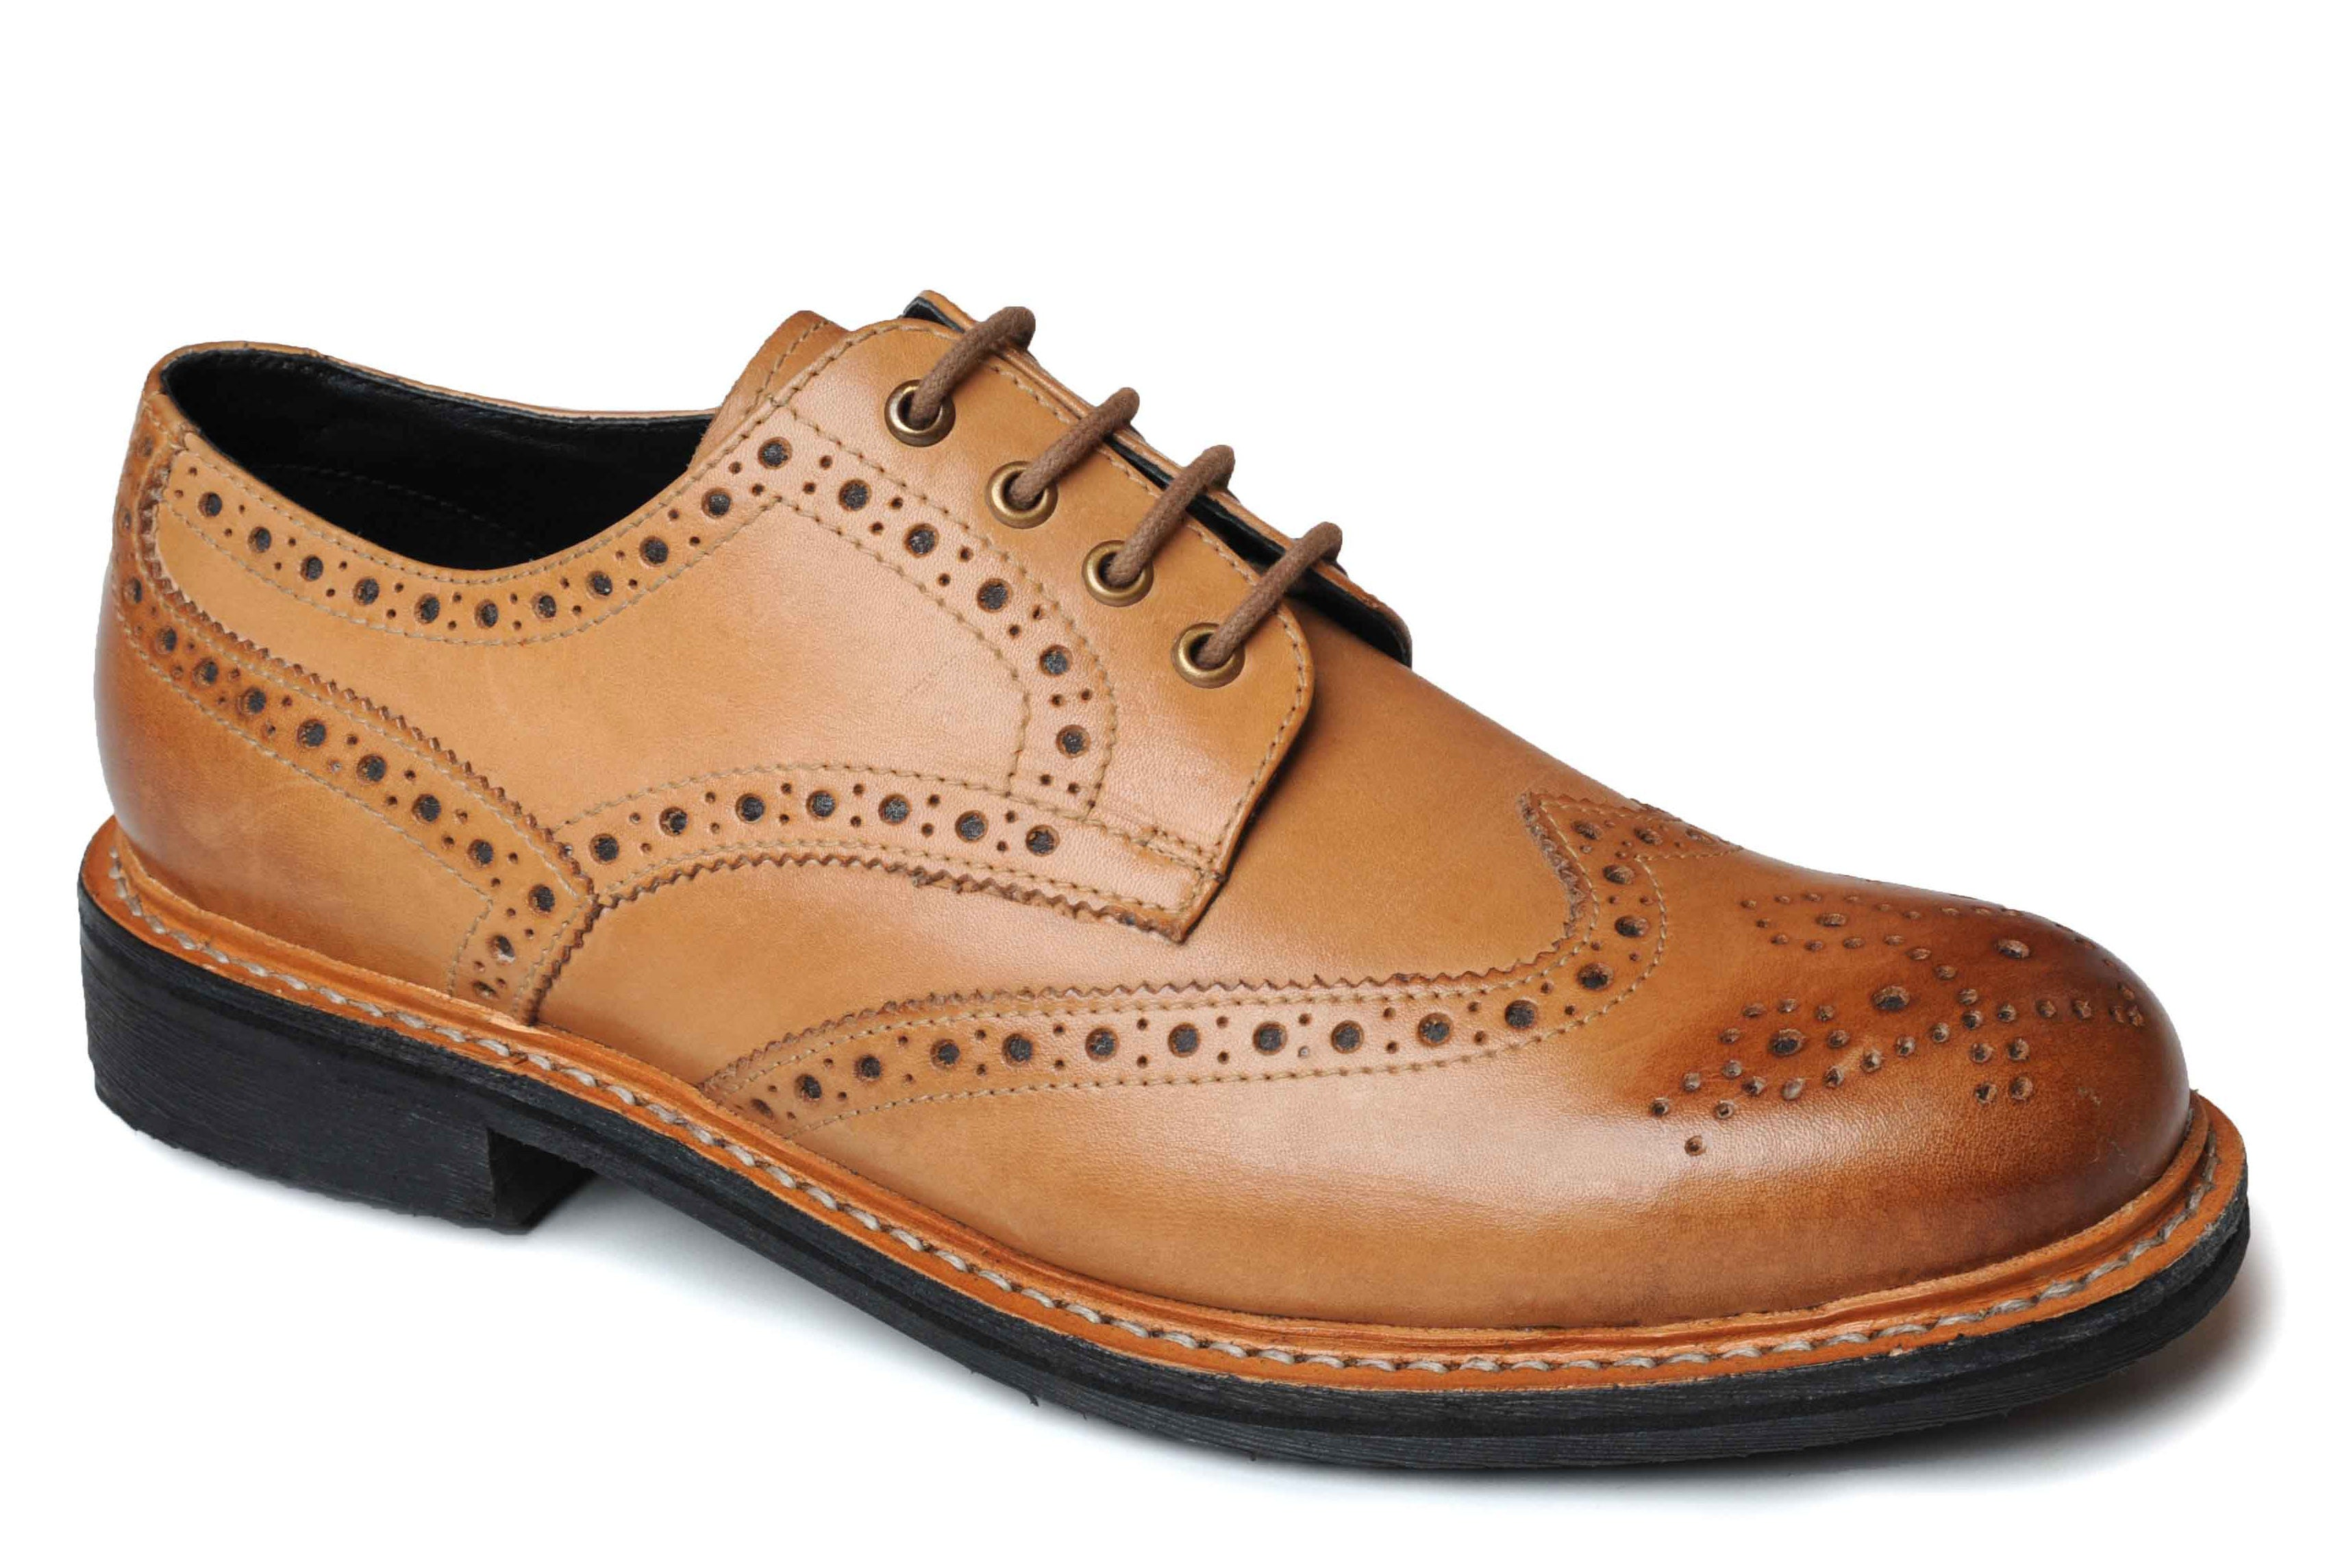 Catesby Tan Leather Brogue with Gripping Rubber Sole